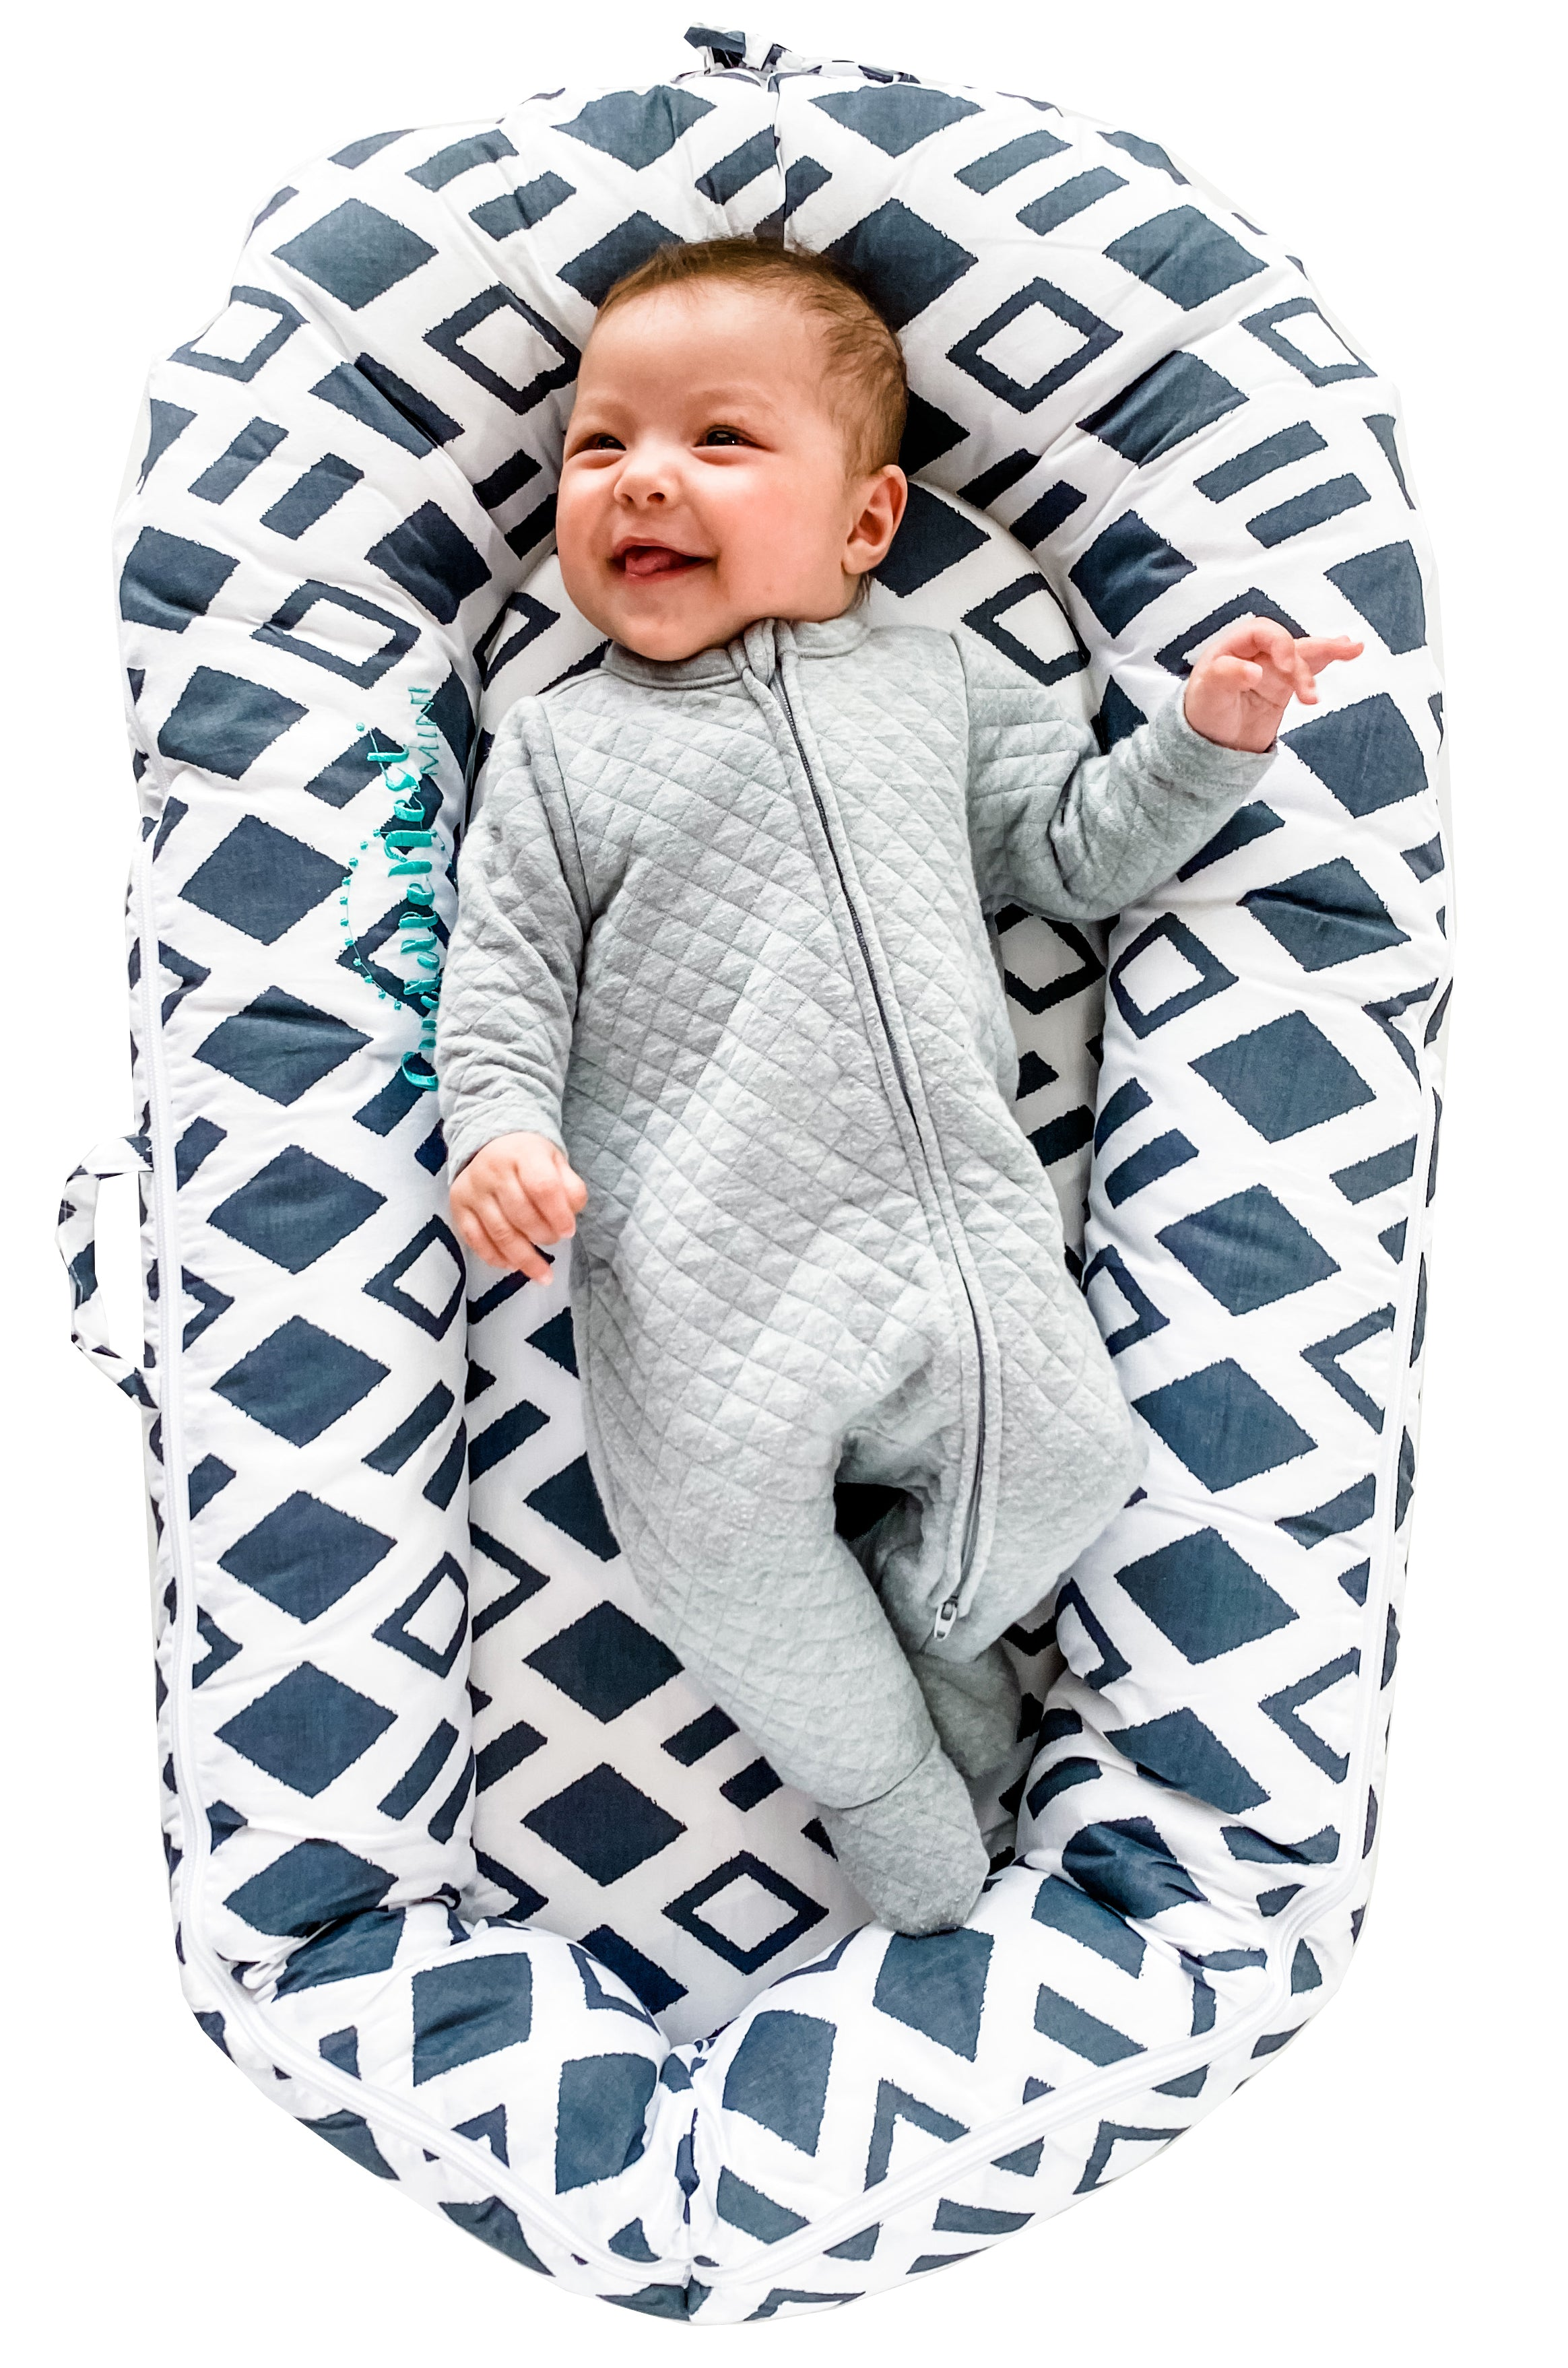 for 0-8 Months Newborn Lounger Infant Lounger Fairy Tale Blue Northwell CuddleNest Mini Baby Lounger